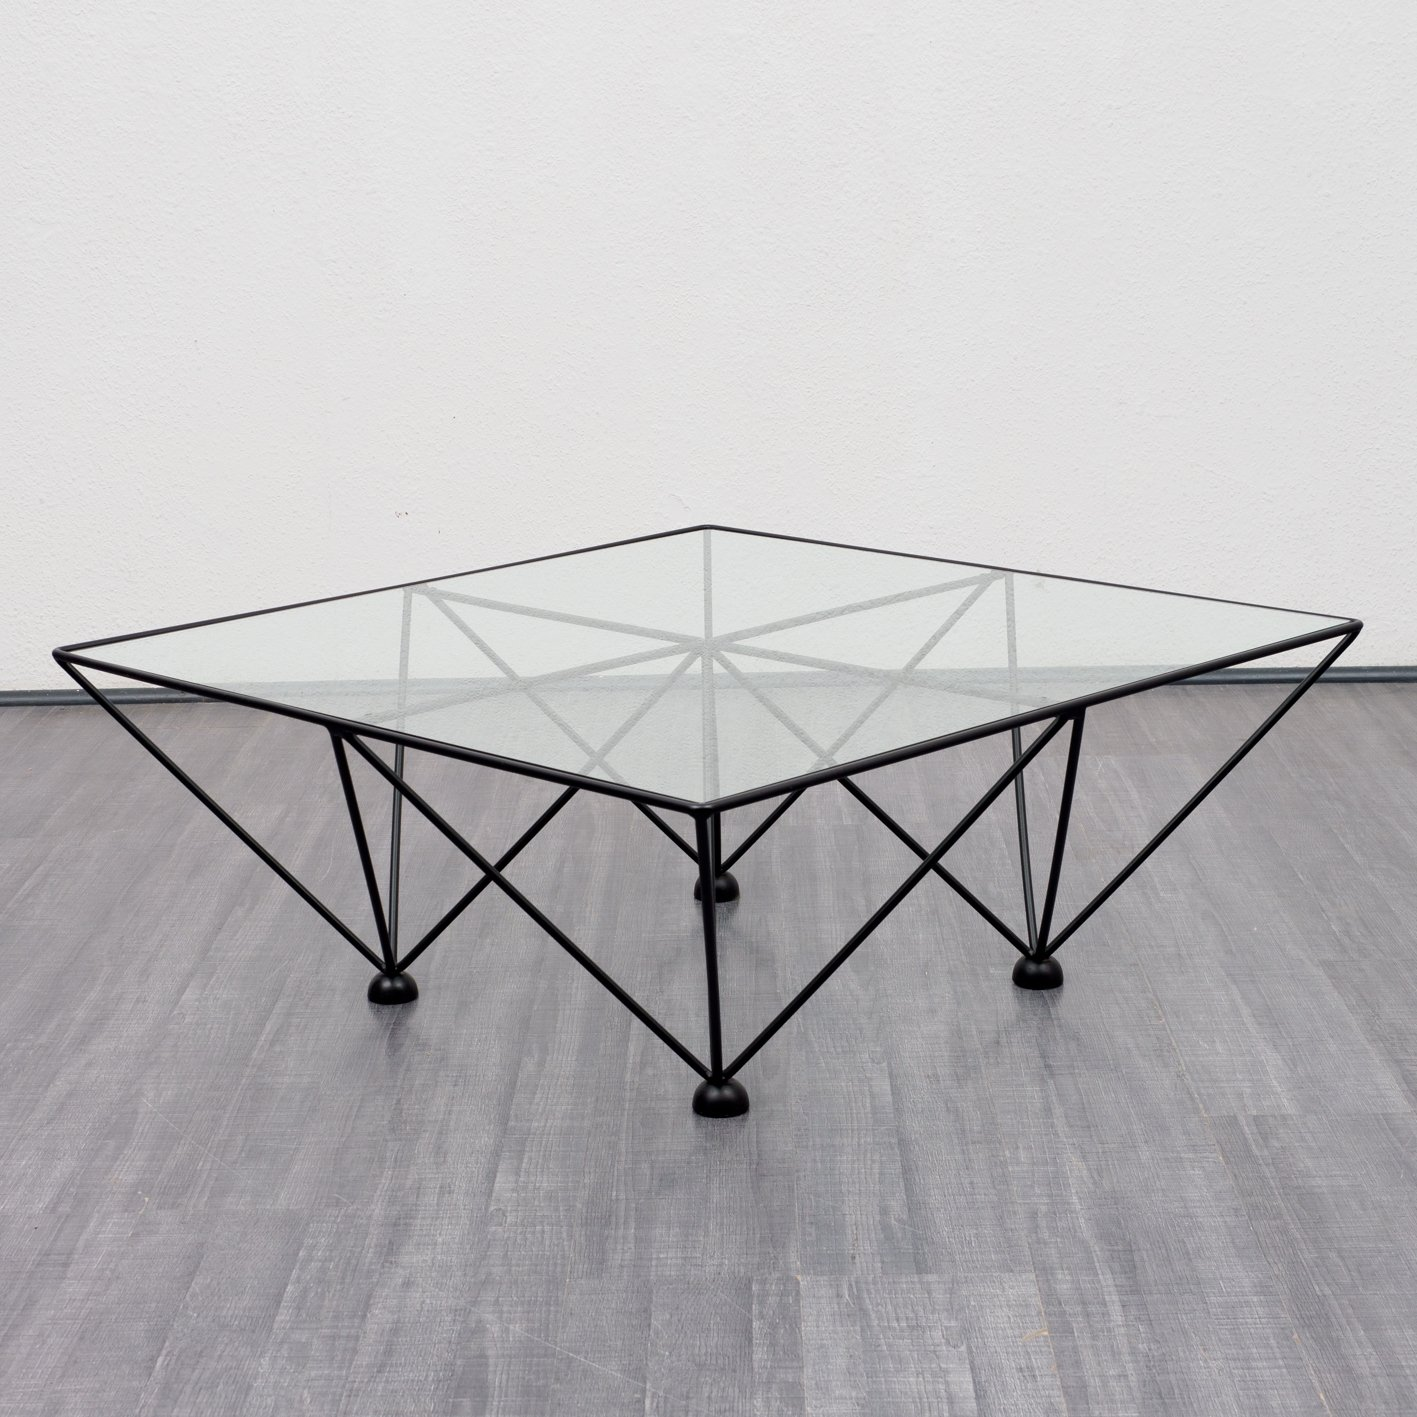 - Vintage Midcentury Glass Coffee Table With Metal Frame, 1970s #93963